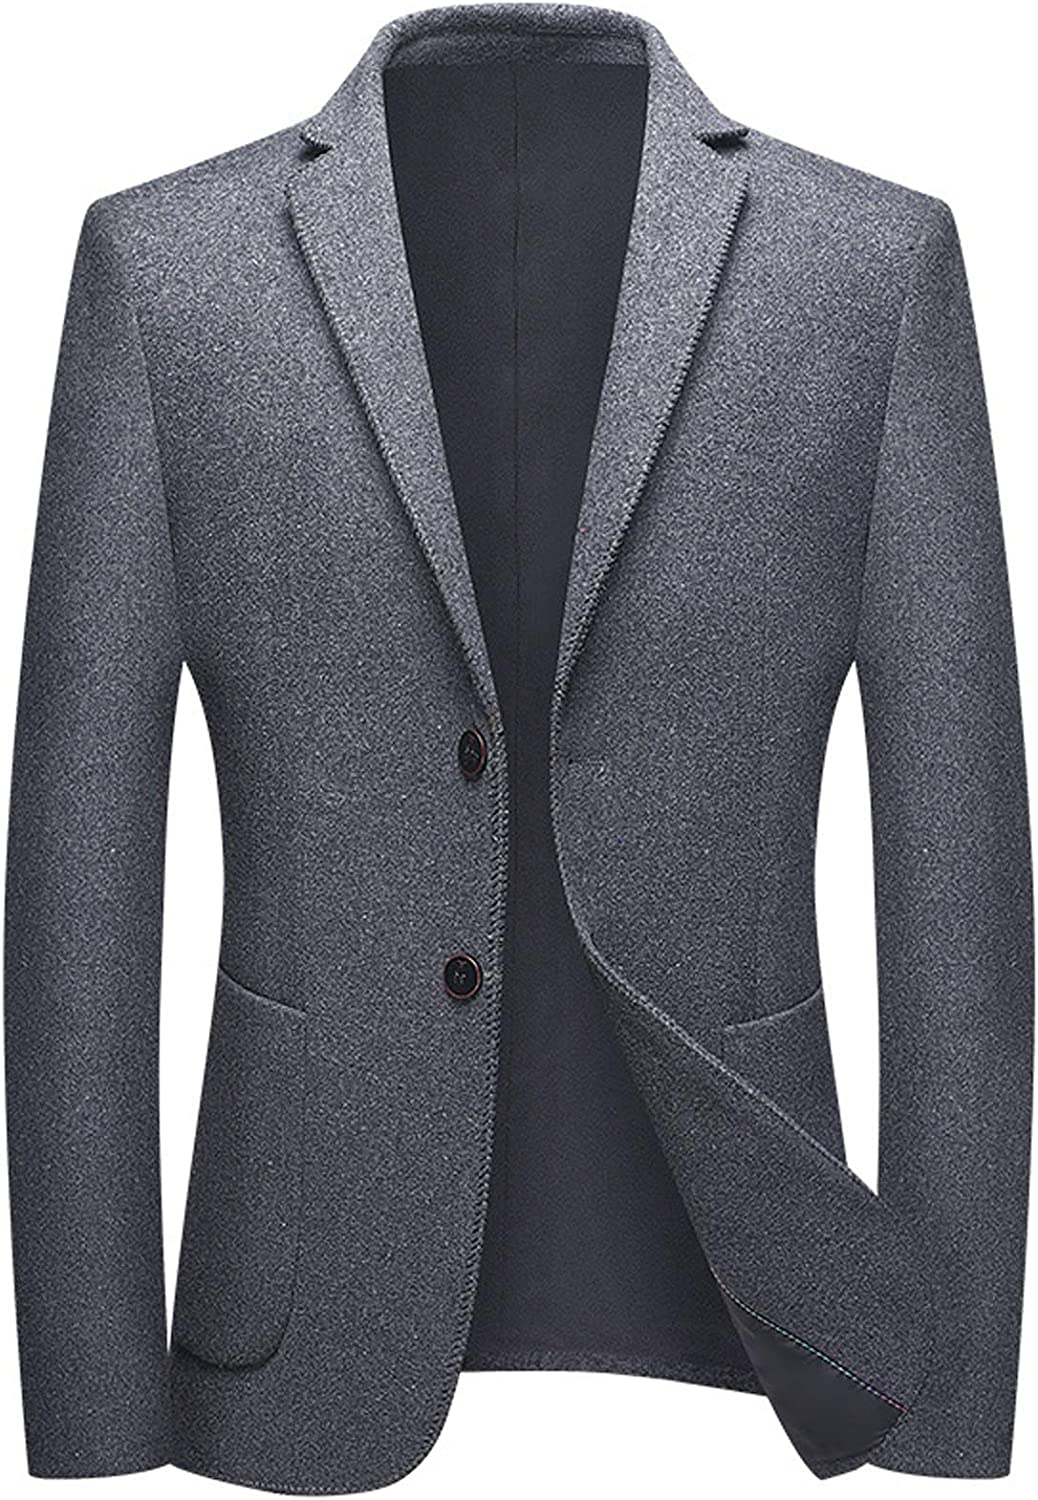 Men's Casual Blazer Wool Blend Notched Lapel Single Breasted Slim Fit Two Patched Pockets